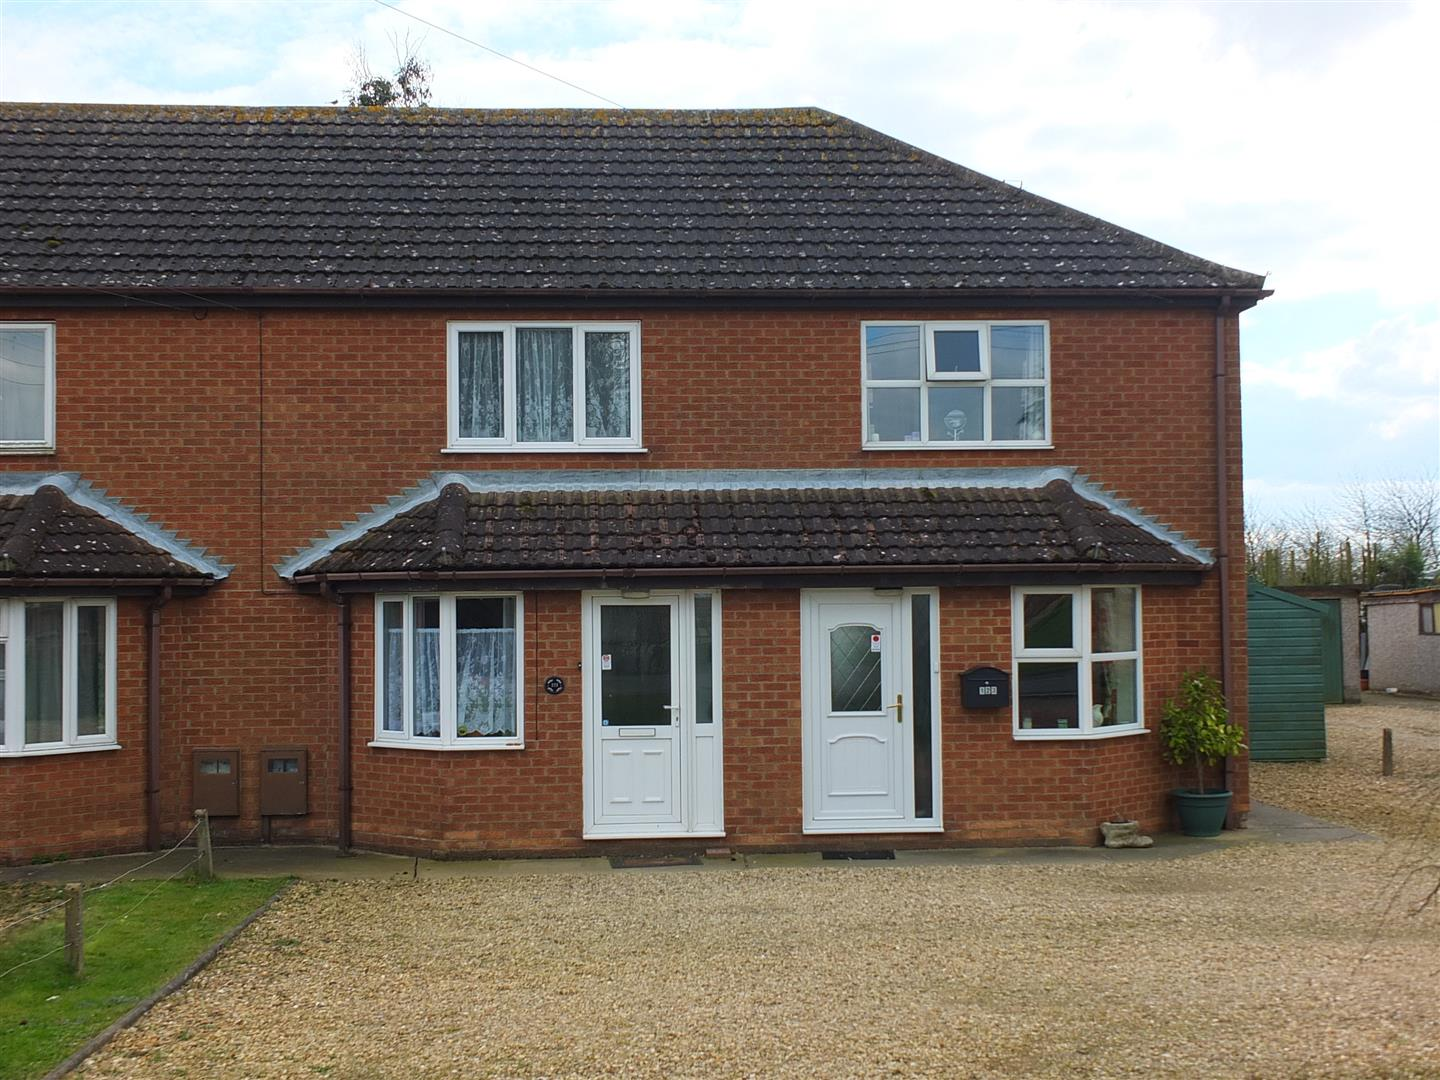 2 bed house to rent in Spalding, PE12 0EF, PE12